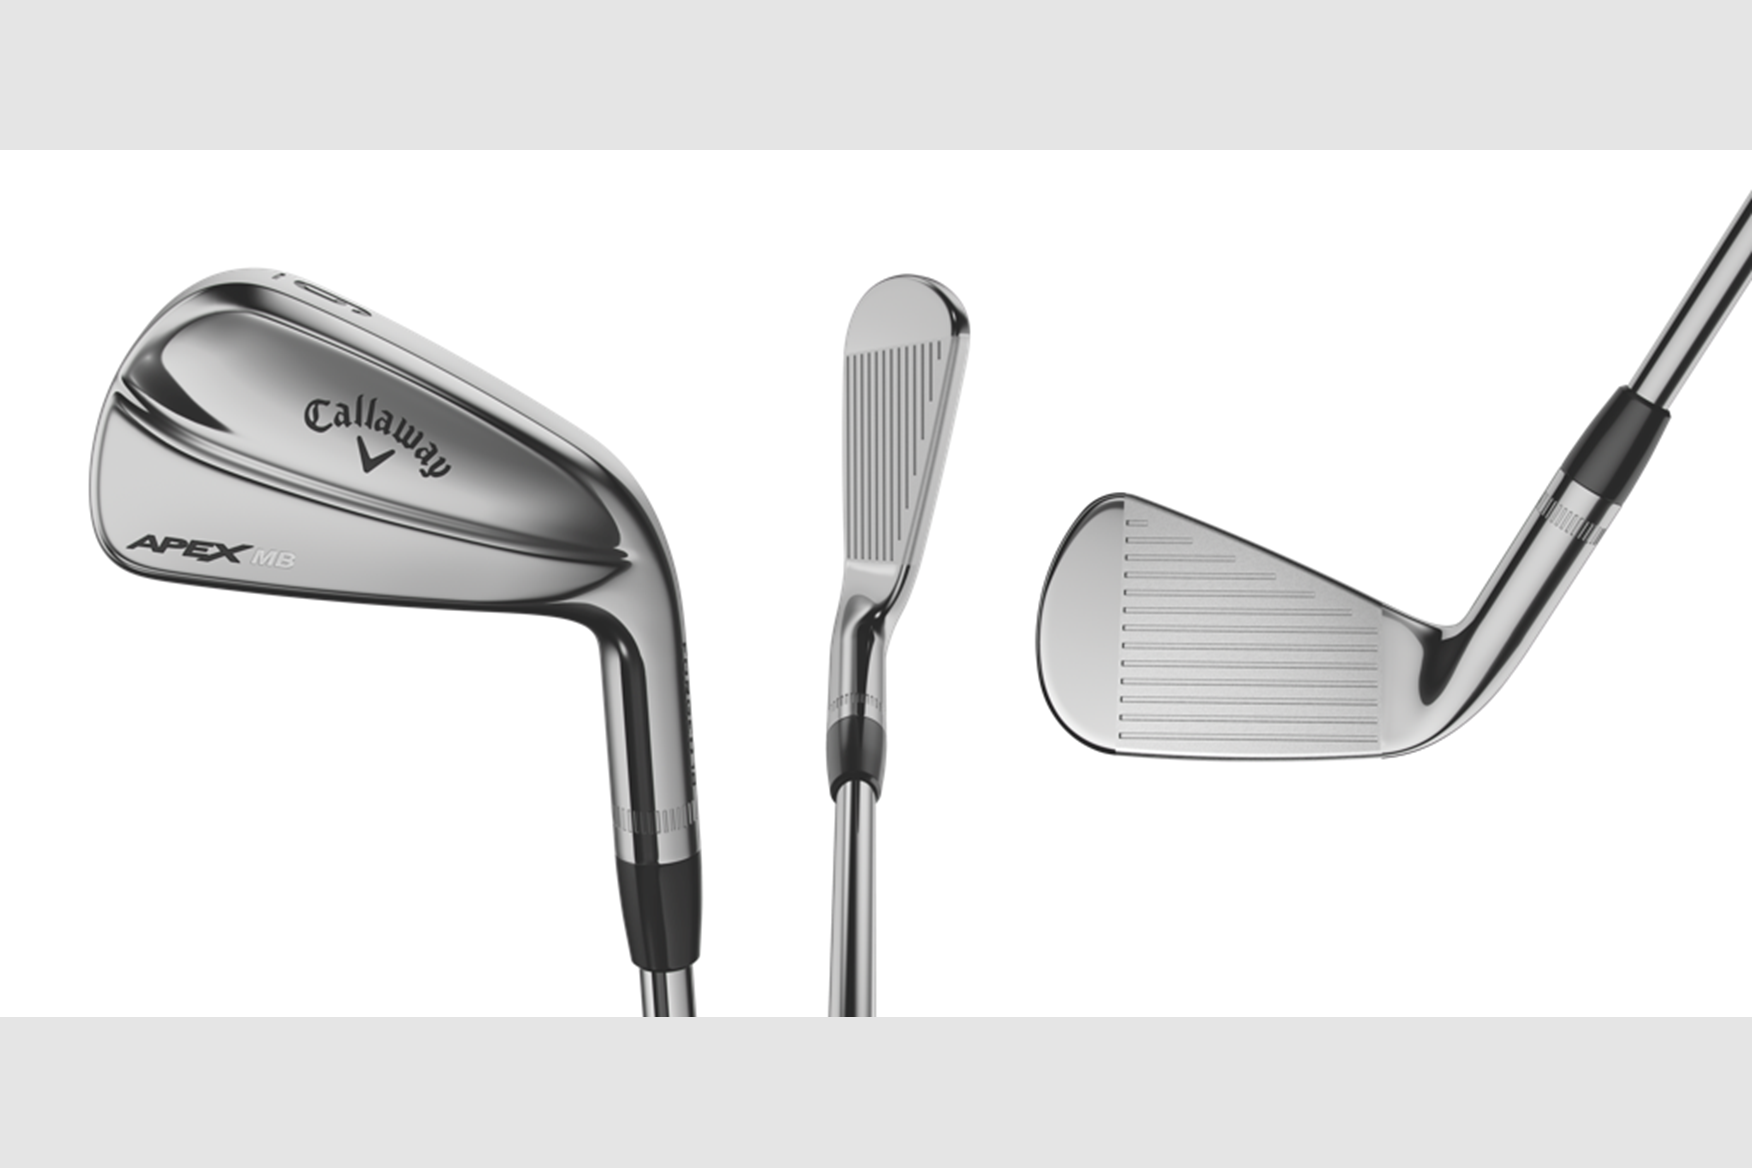 Callaway Apex Cf 16 Irons Review Equipment Reviews Todays Golfer